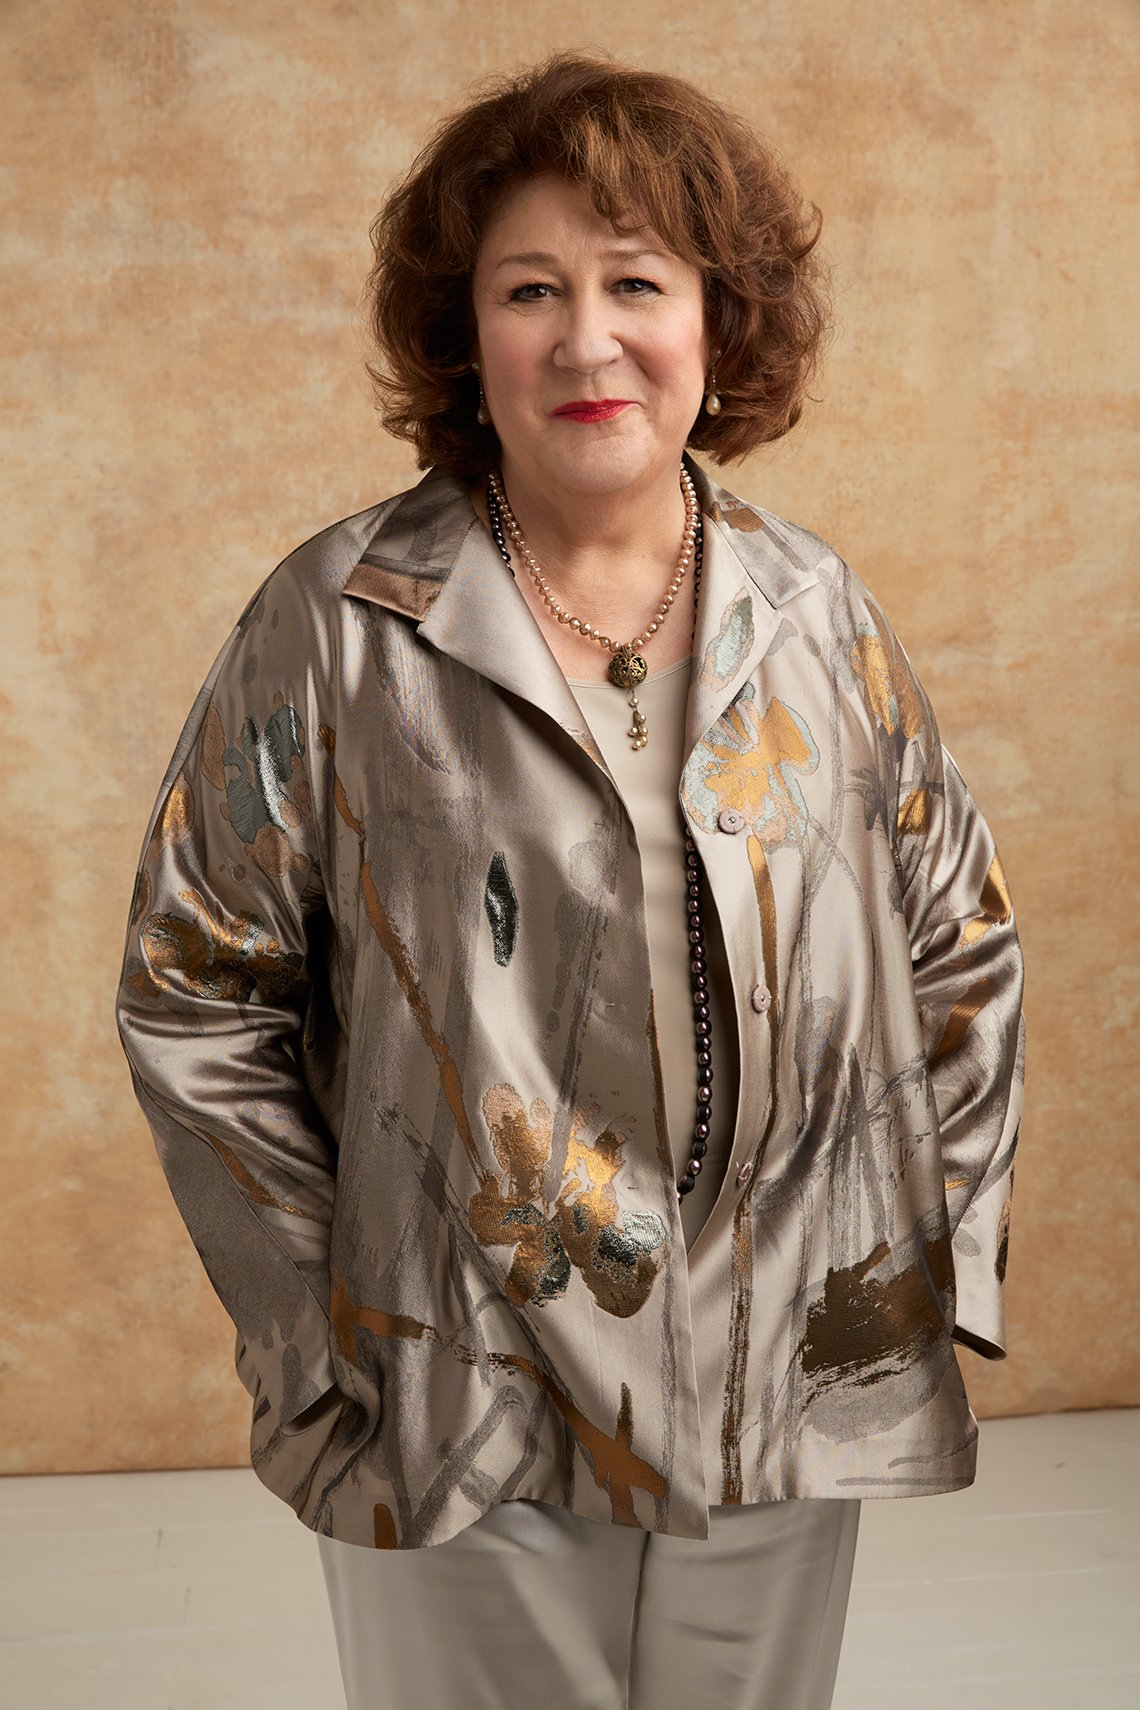 Margo Martindale at the 16th Annual AARP The Magazine's Movies for Grownups Awards